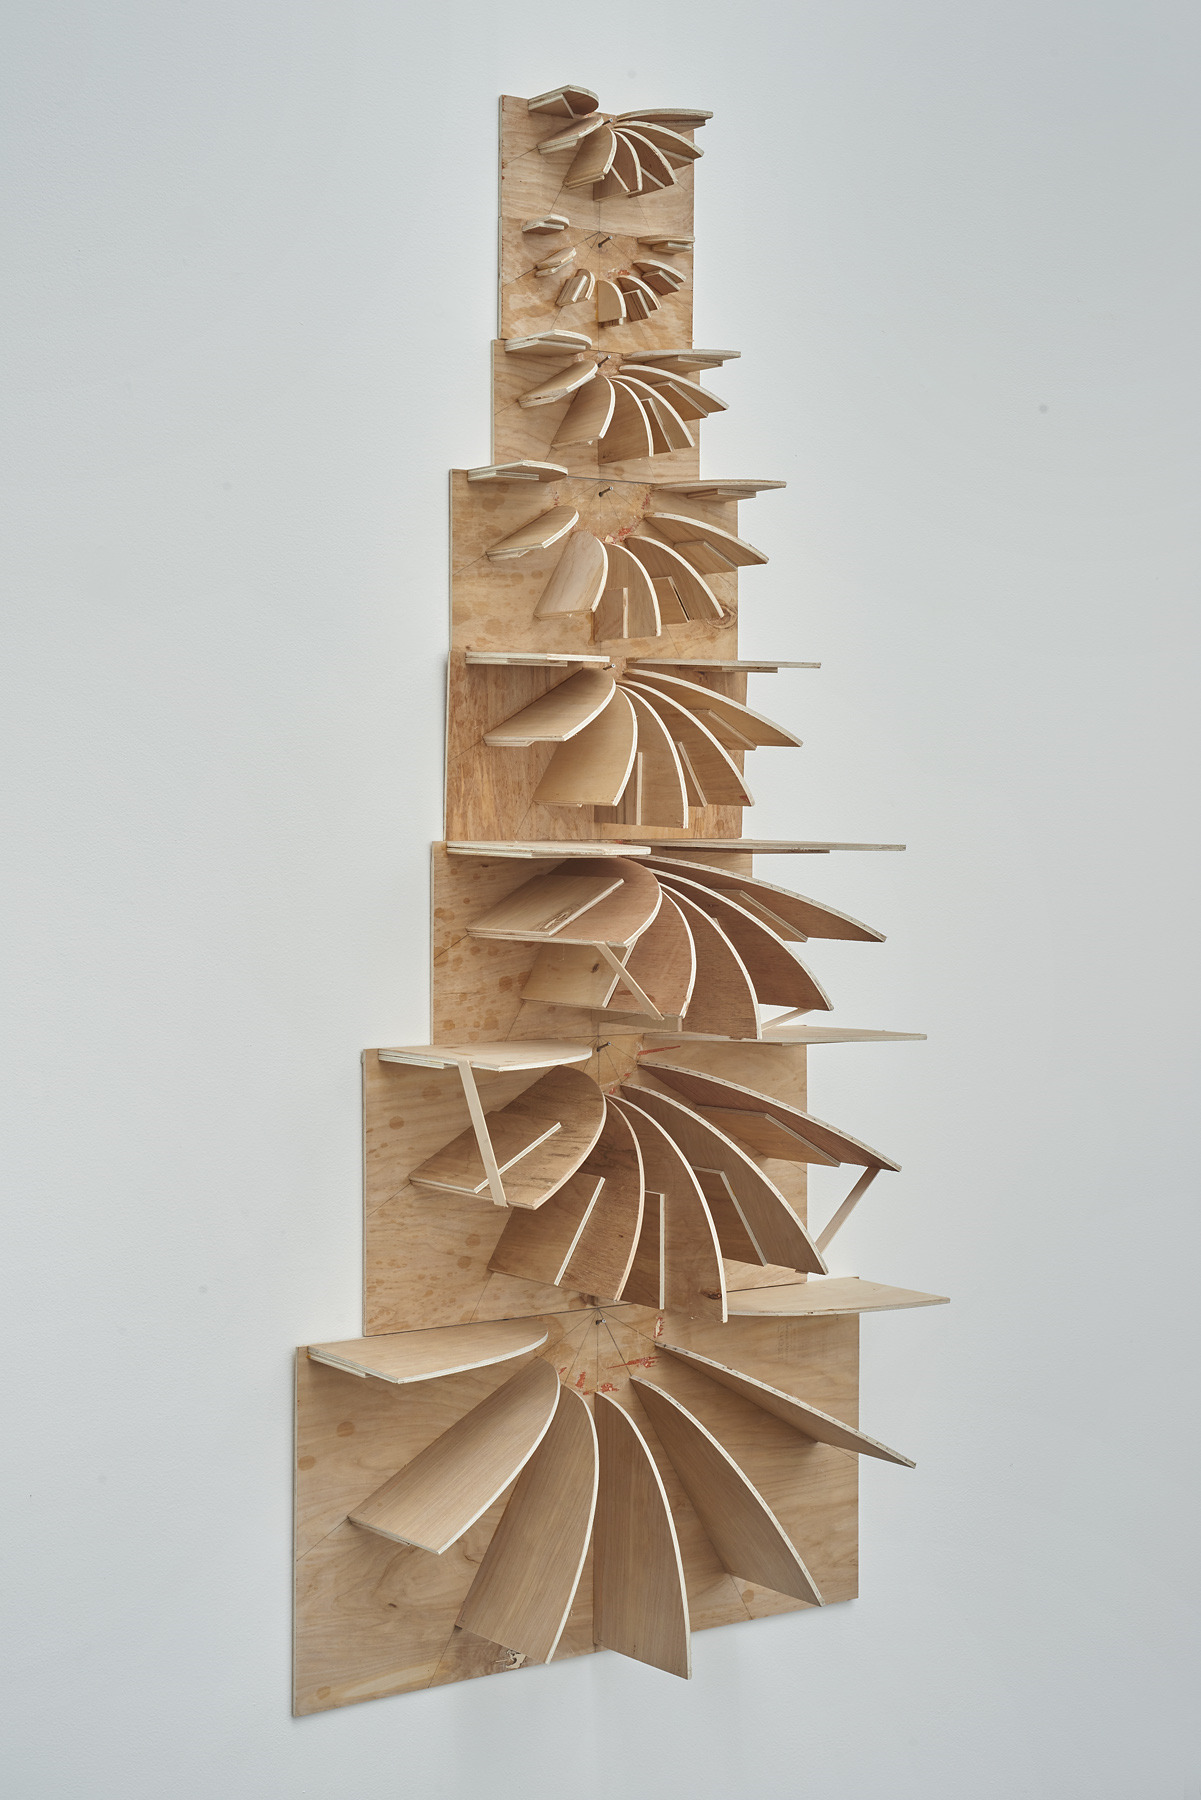 68.Hoeber_Negative Space Thought, 2015_Plywood, glue, shellac, popsicle sticks and nails_55x25x9.5in_alt view